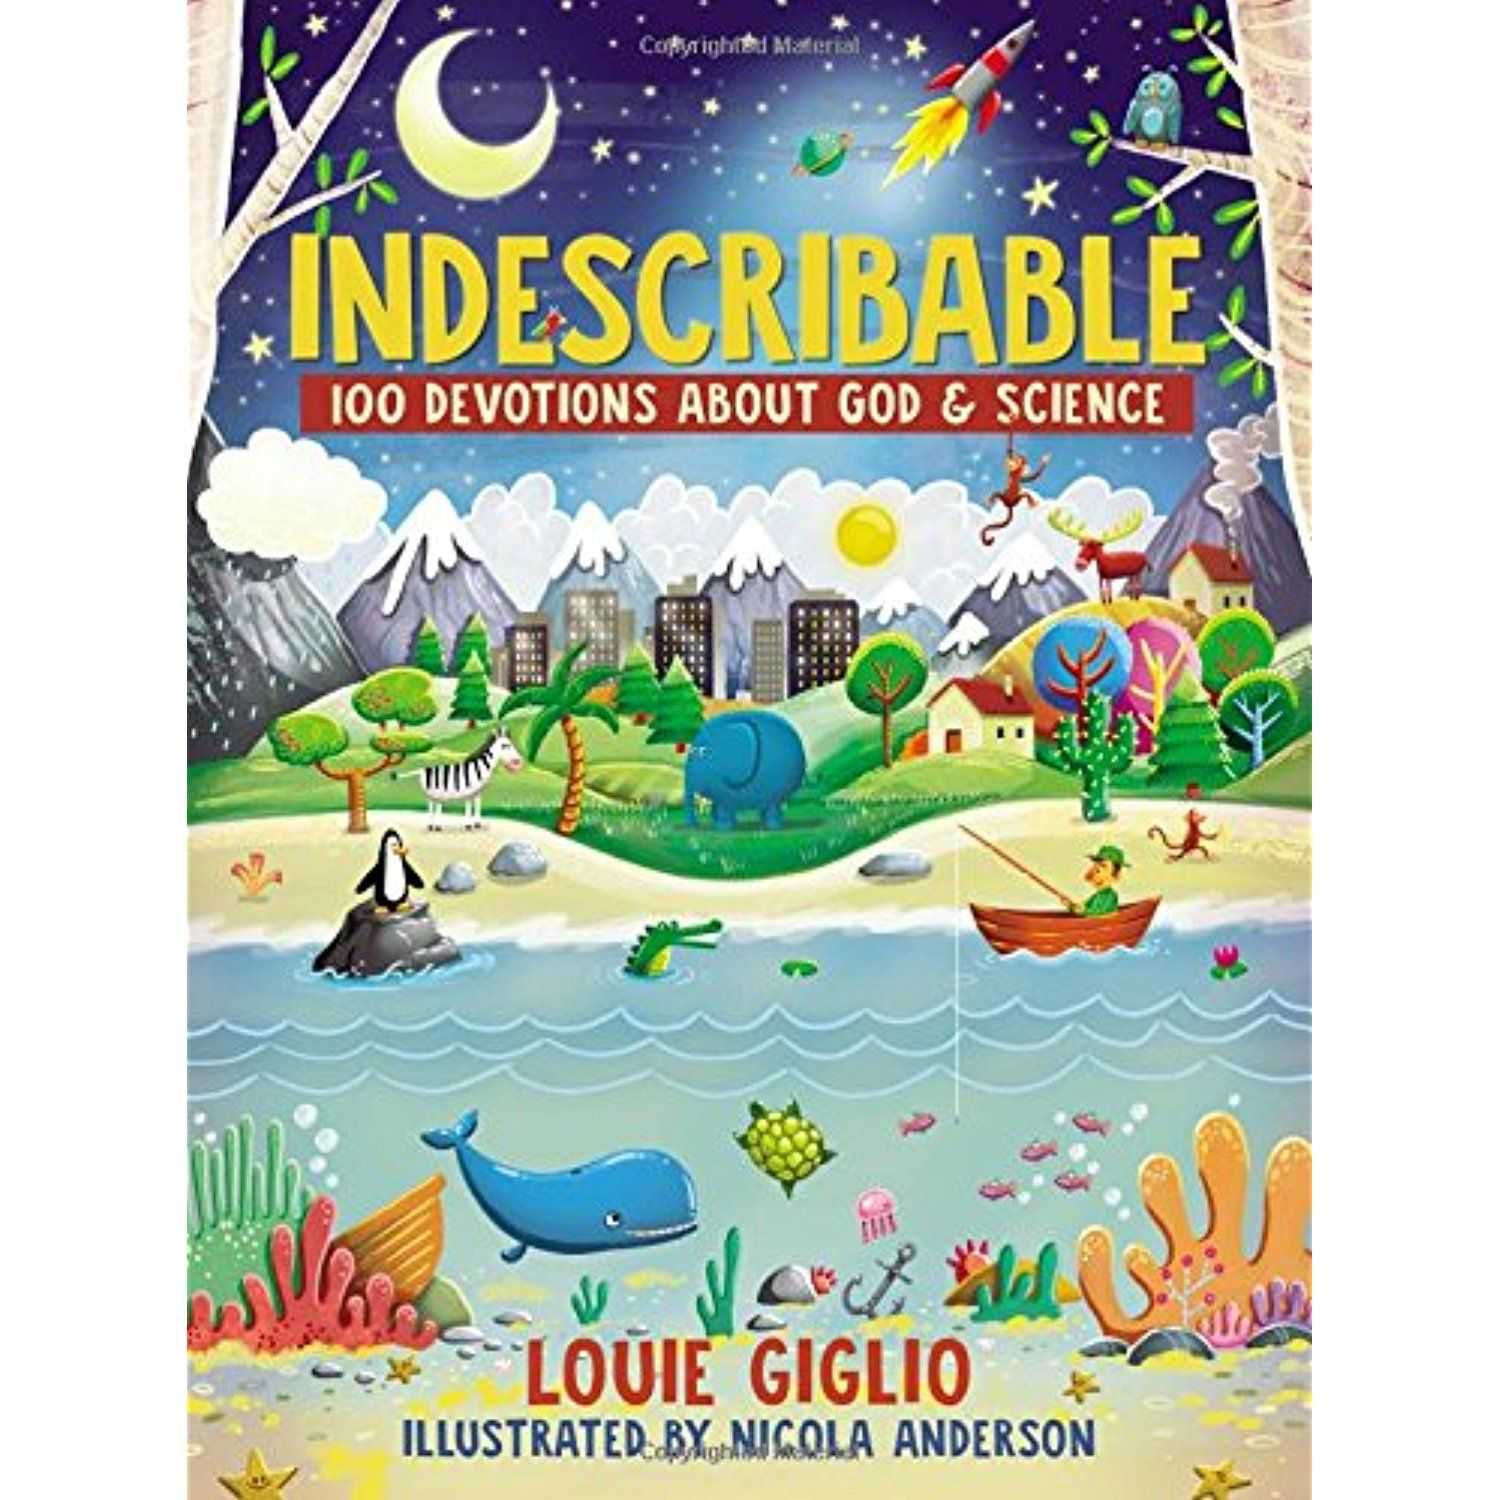 Indescribable 100 devotions for kids about god and